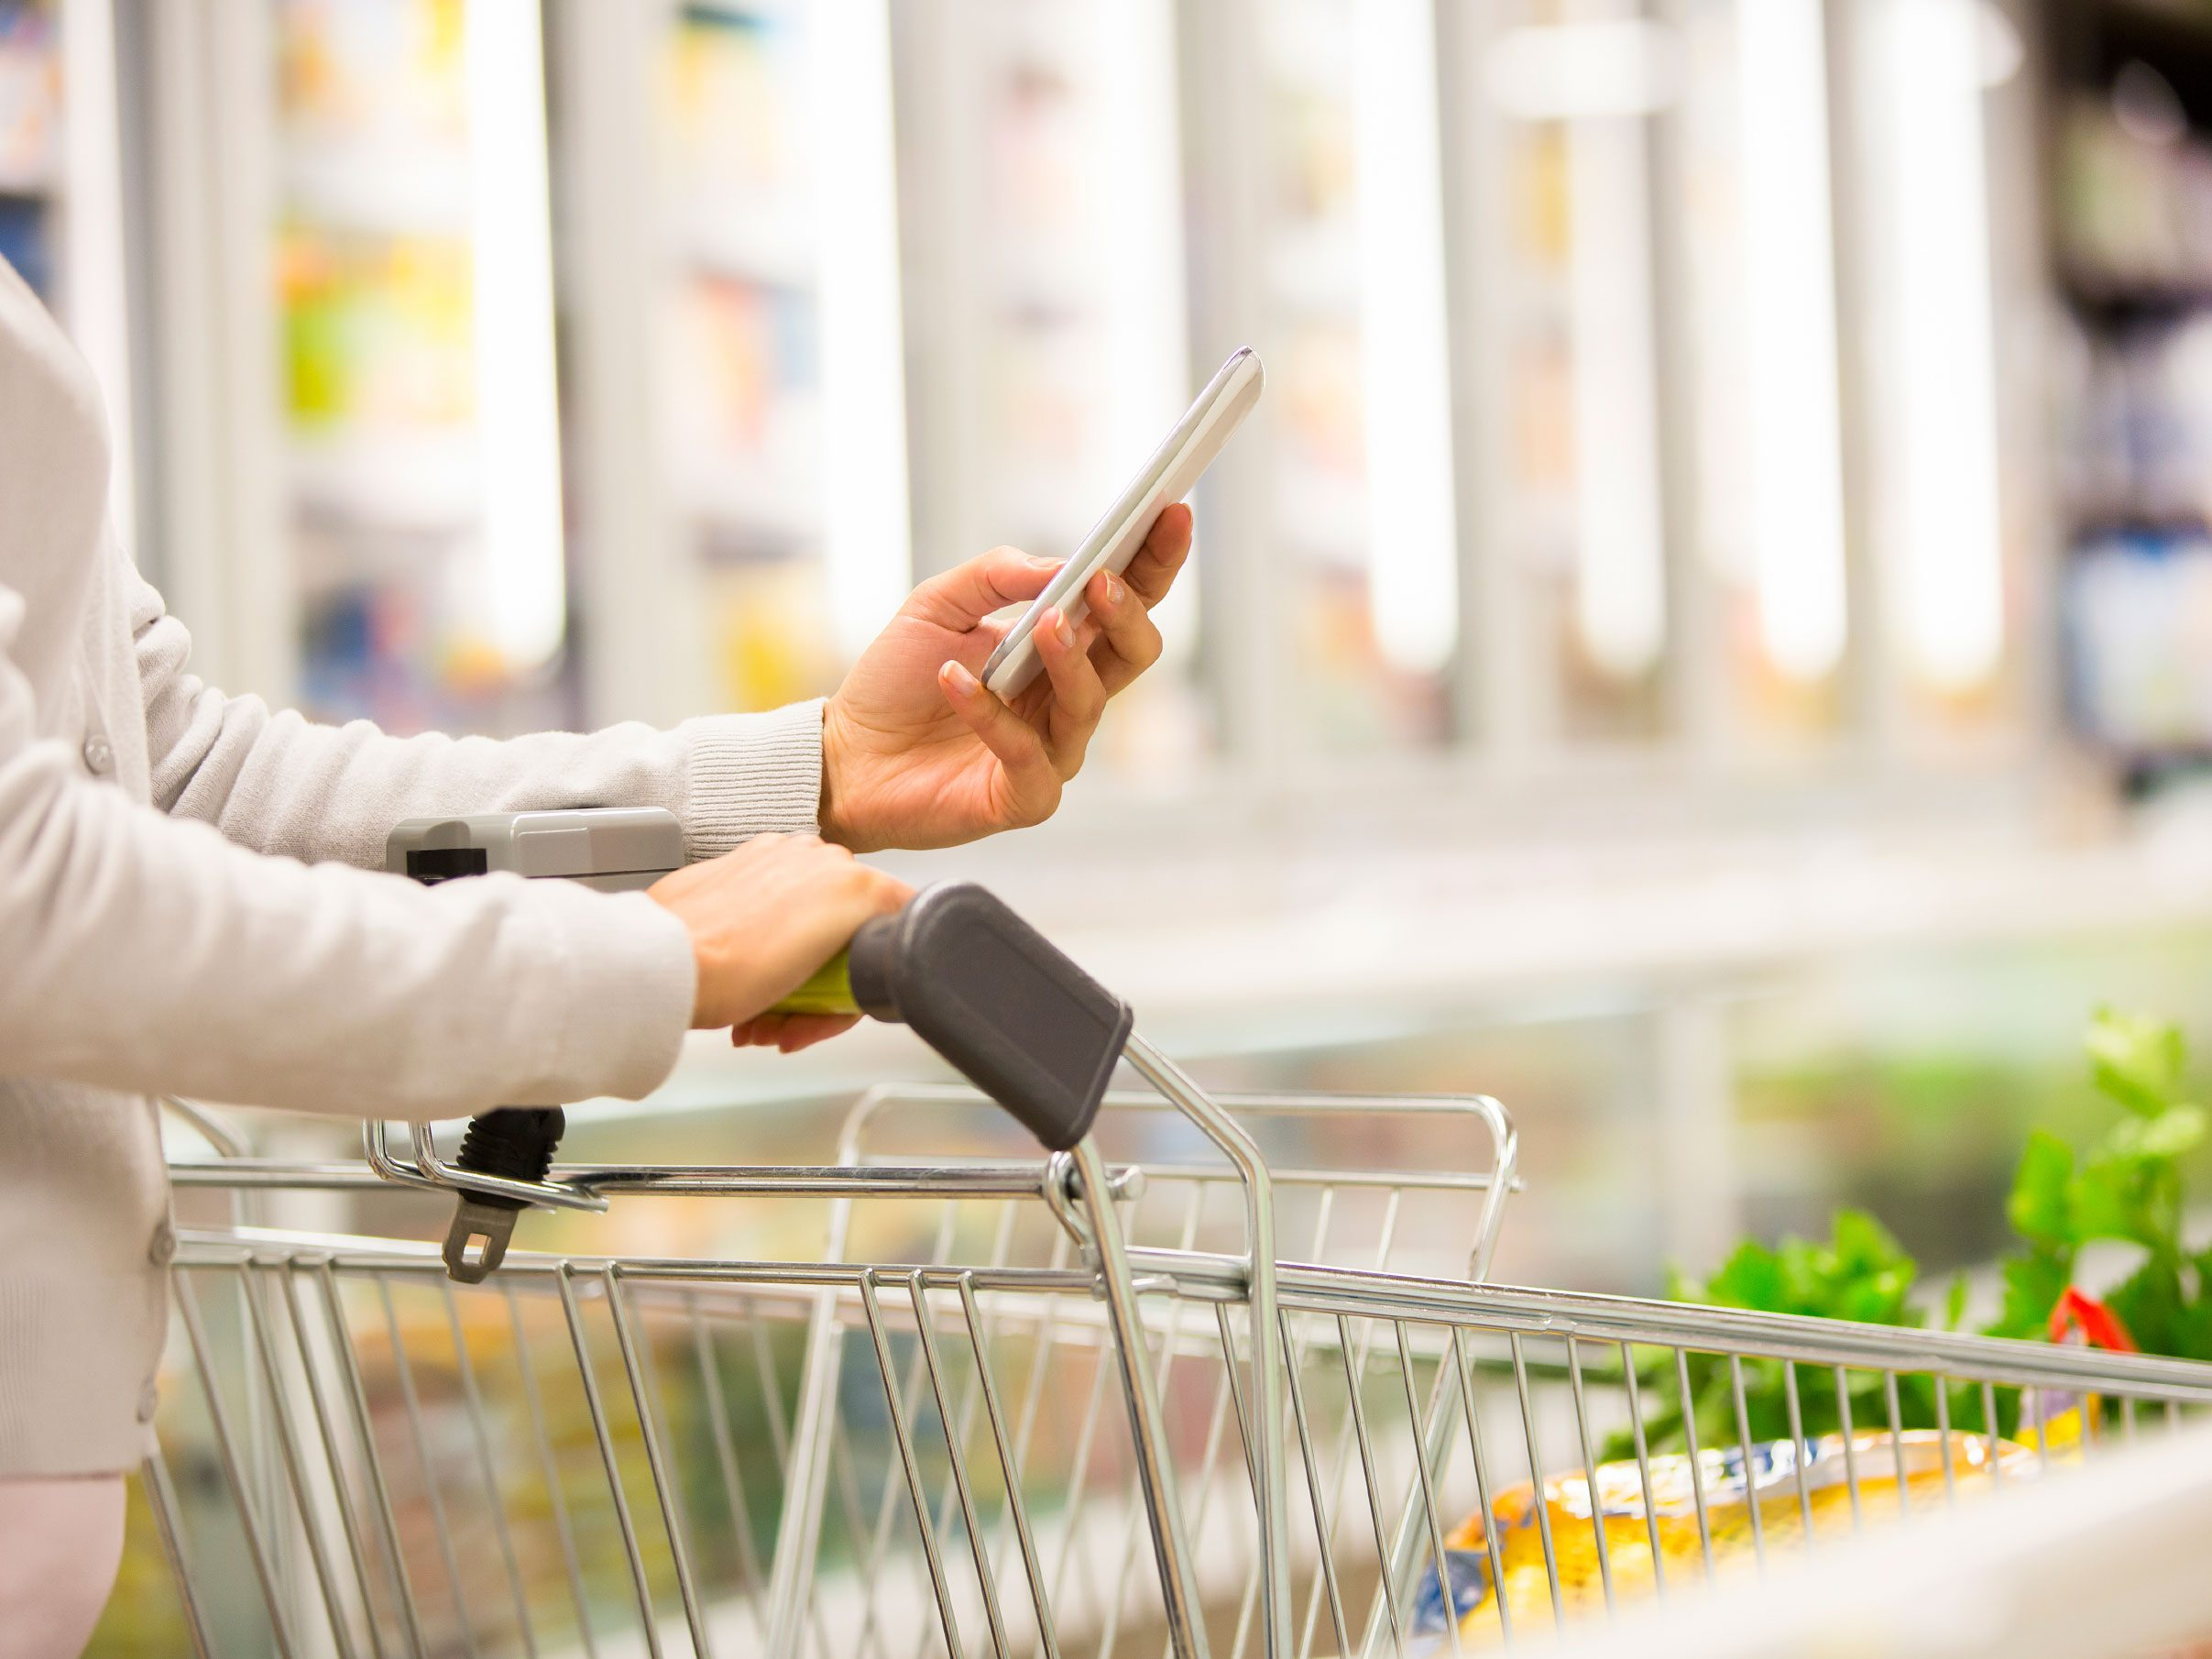 5 tips that will change how you shop at the grocery store